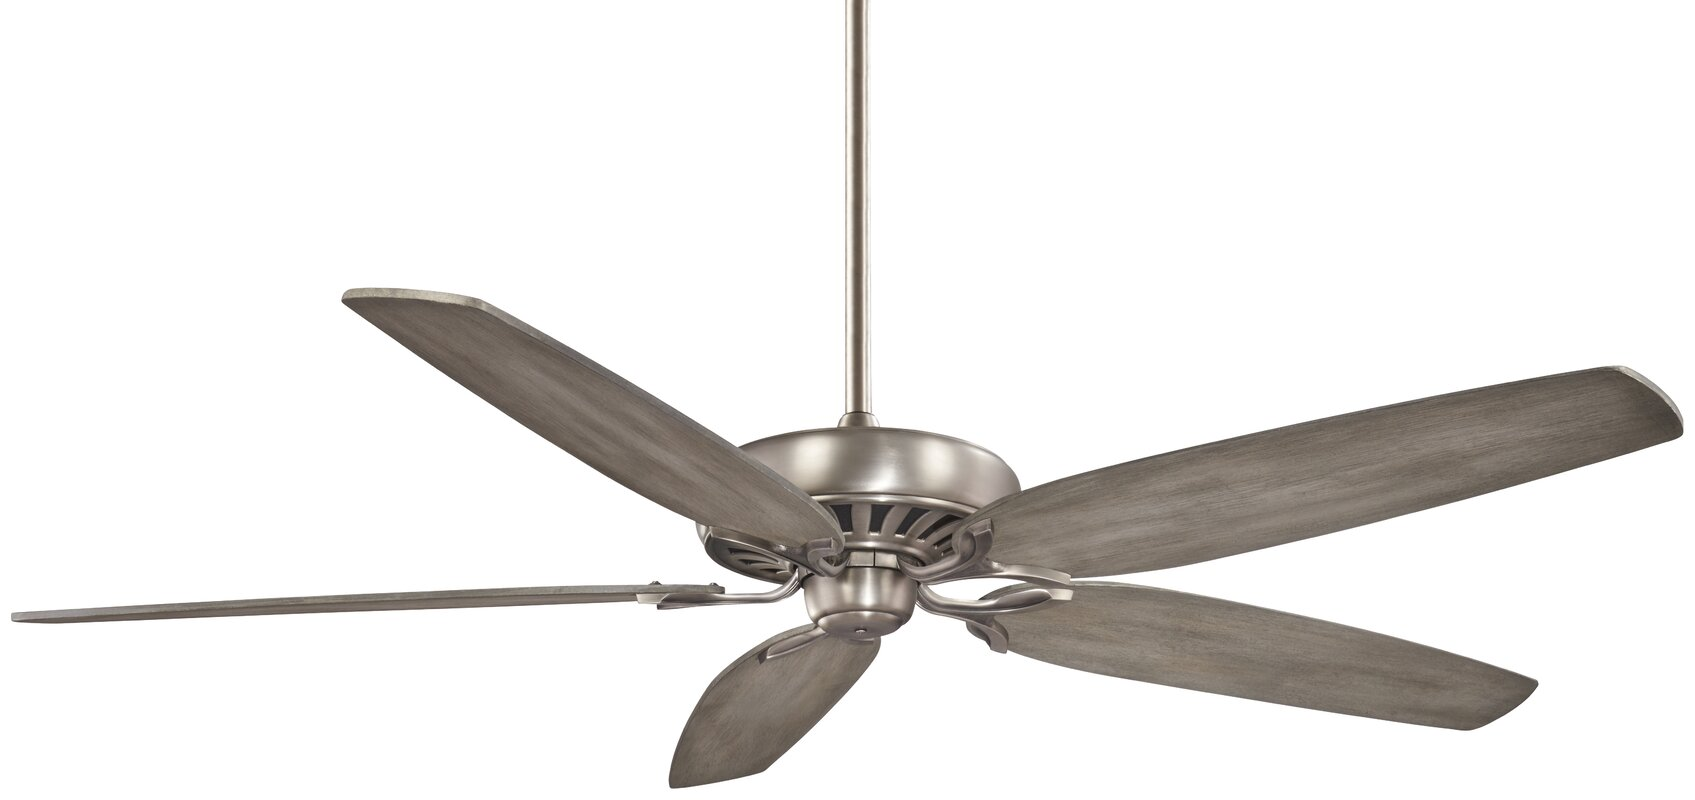 Minka aire 72 great room basic 5 blade ceiling fan reviews wayfair 72 great room basic 5 blade ceiling fan mozeypictures Images